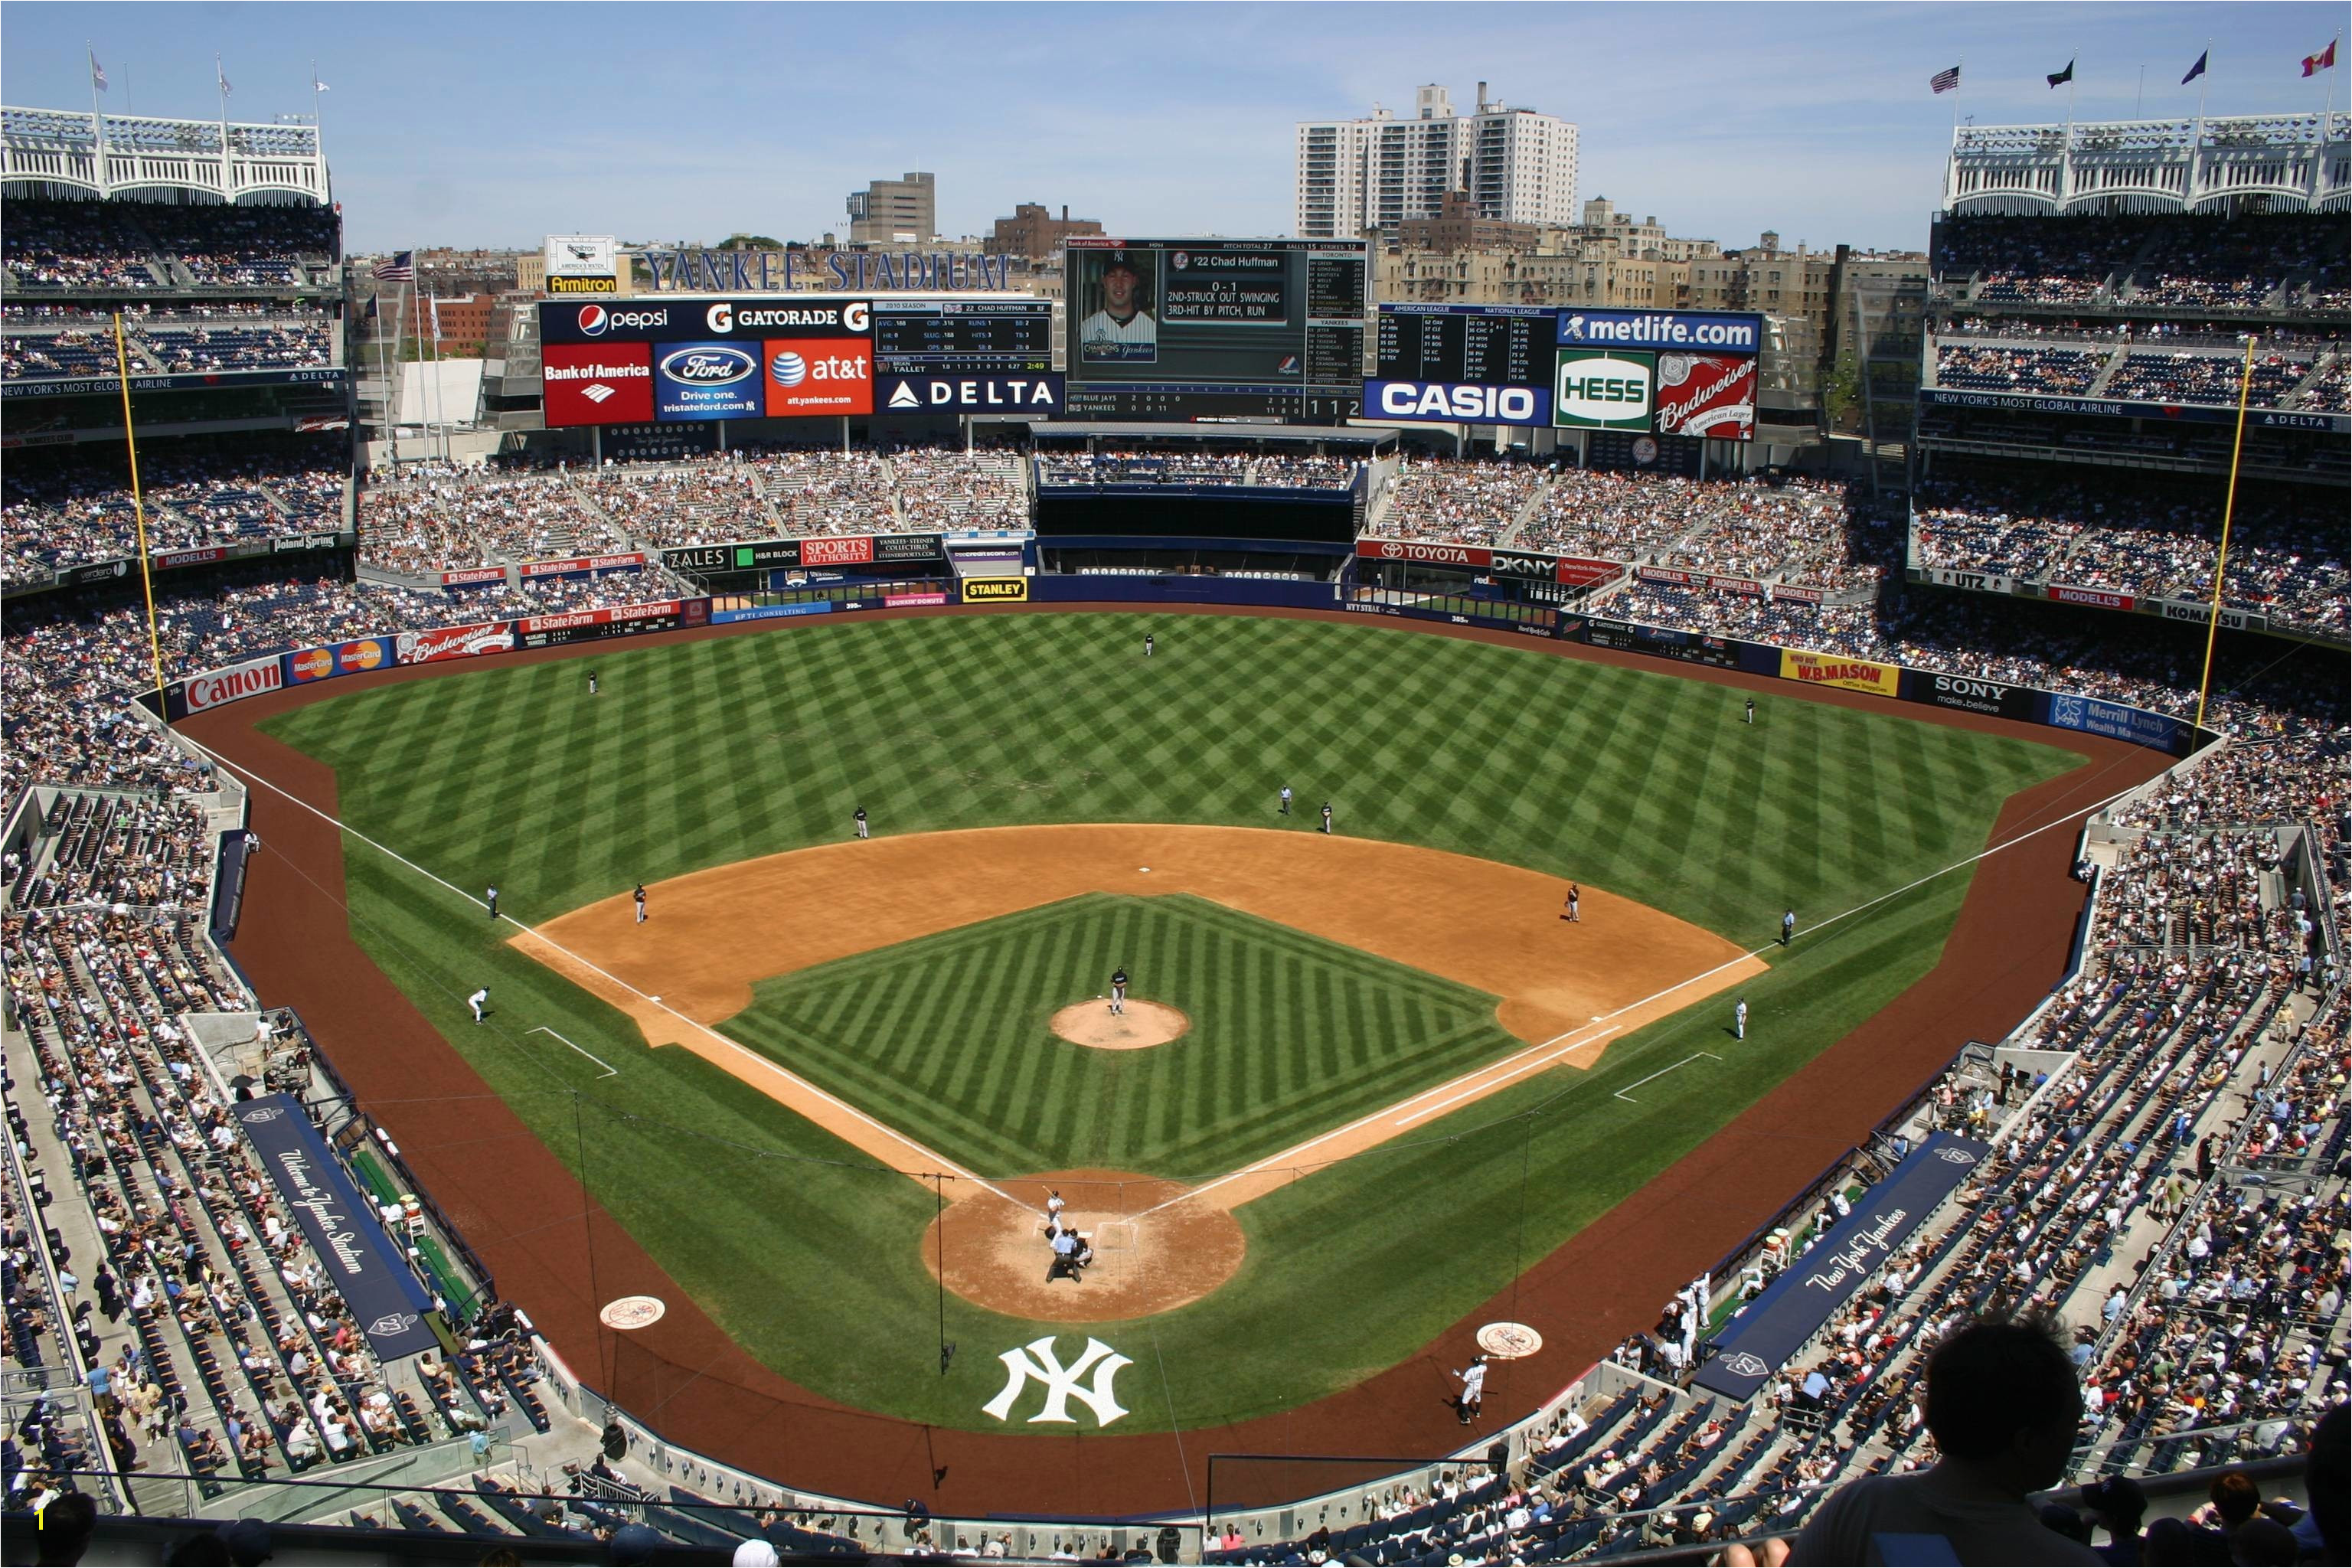 3072x2048 New York Yankees Stadium Wallpaper Viewing Gallery